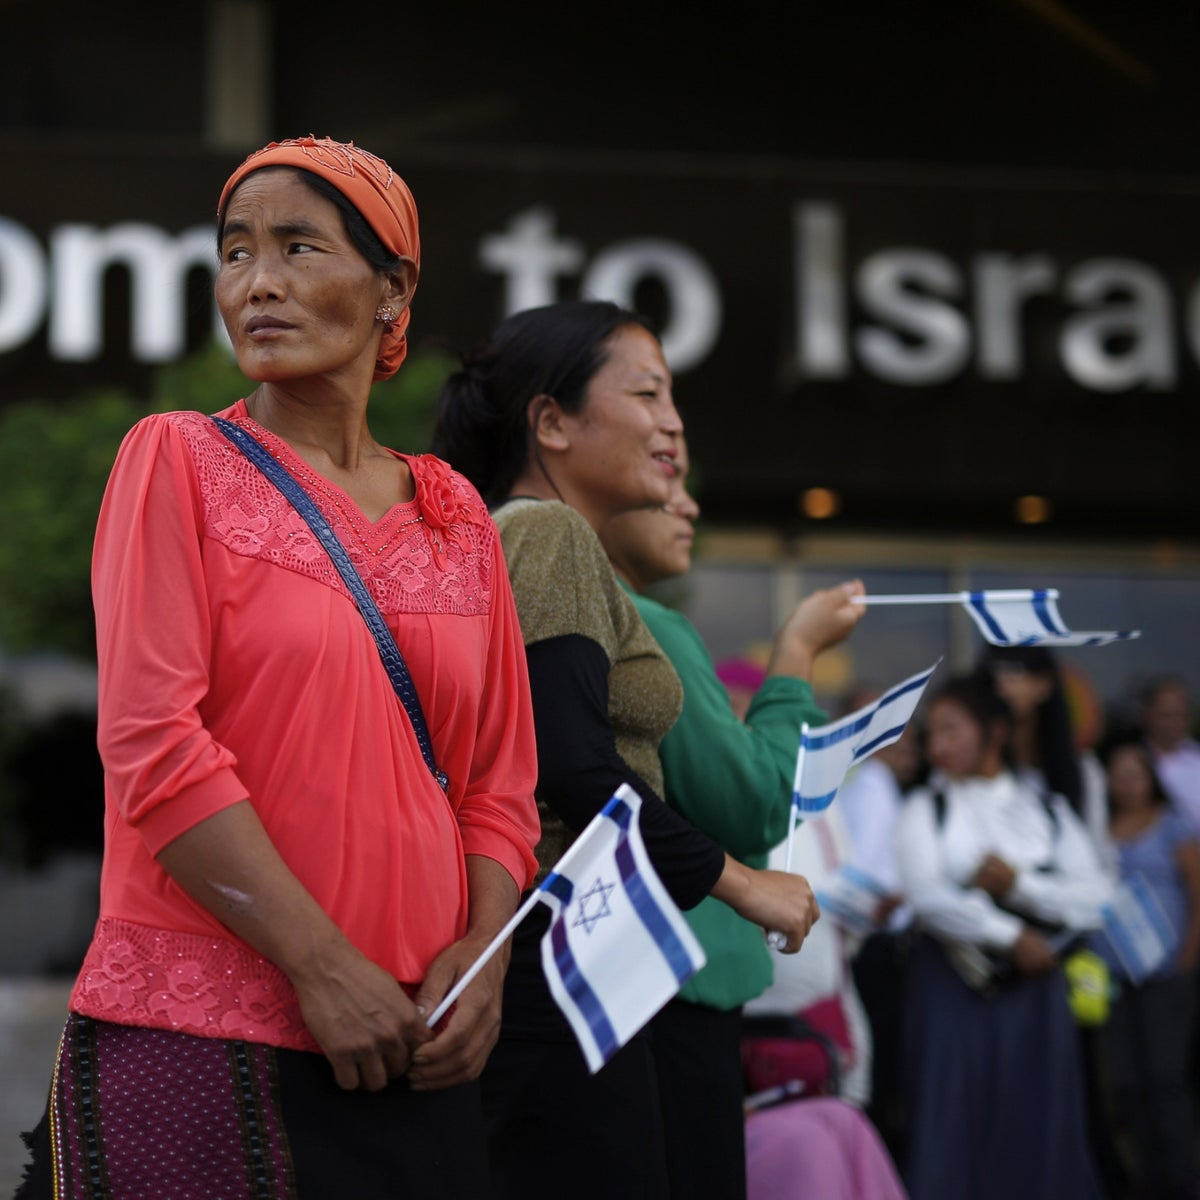 Members of the Bnei Menashe community at Ben-Gurion Airport in pre-COVID times.